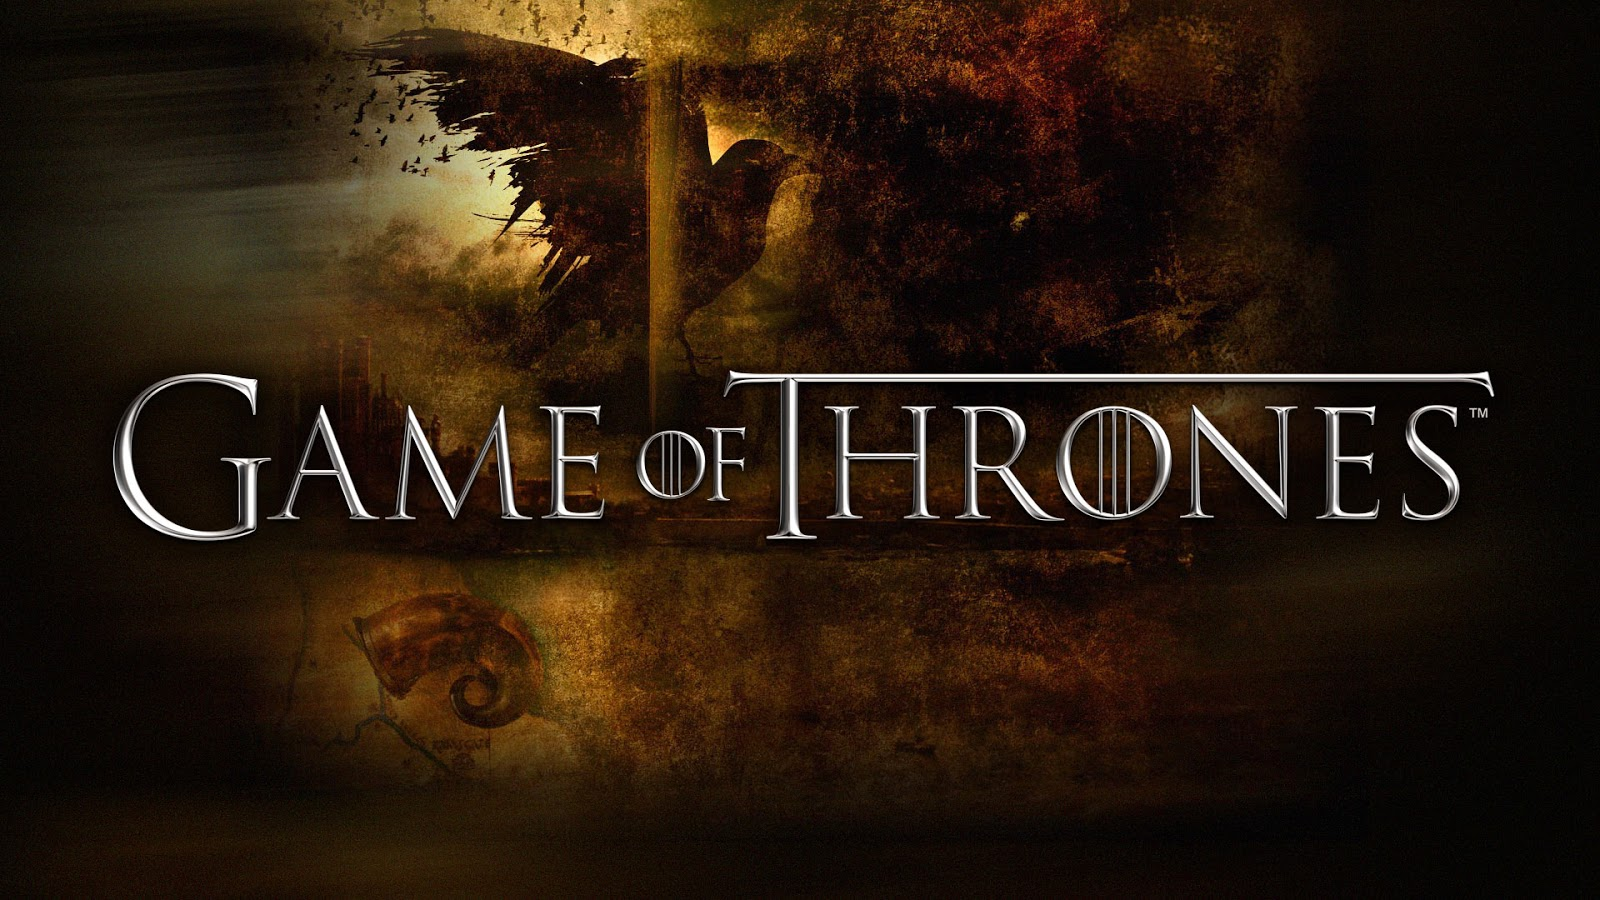 gmae of thrones online